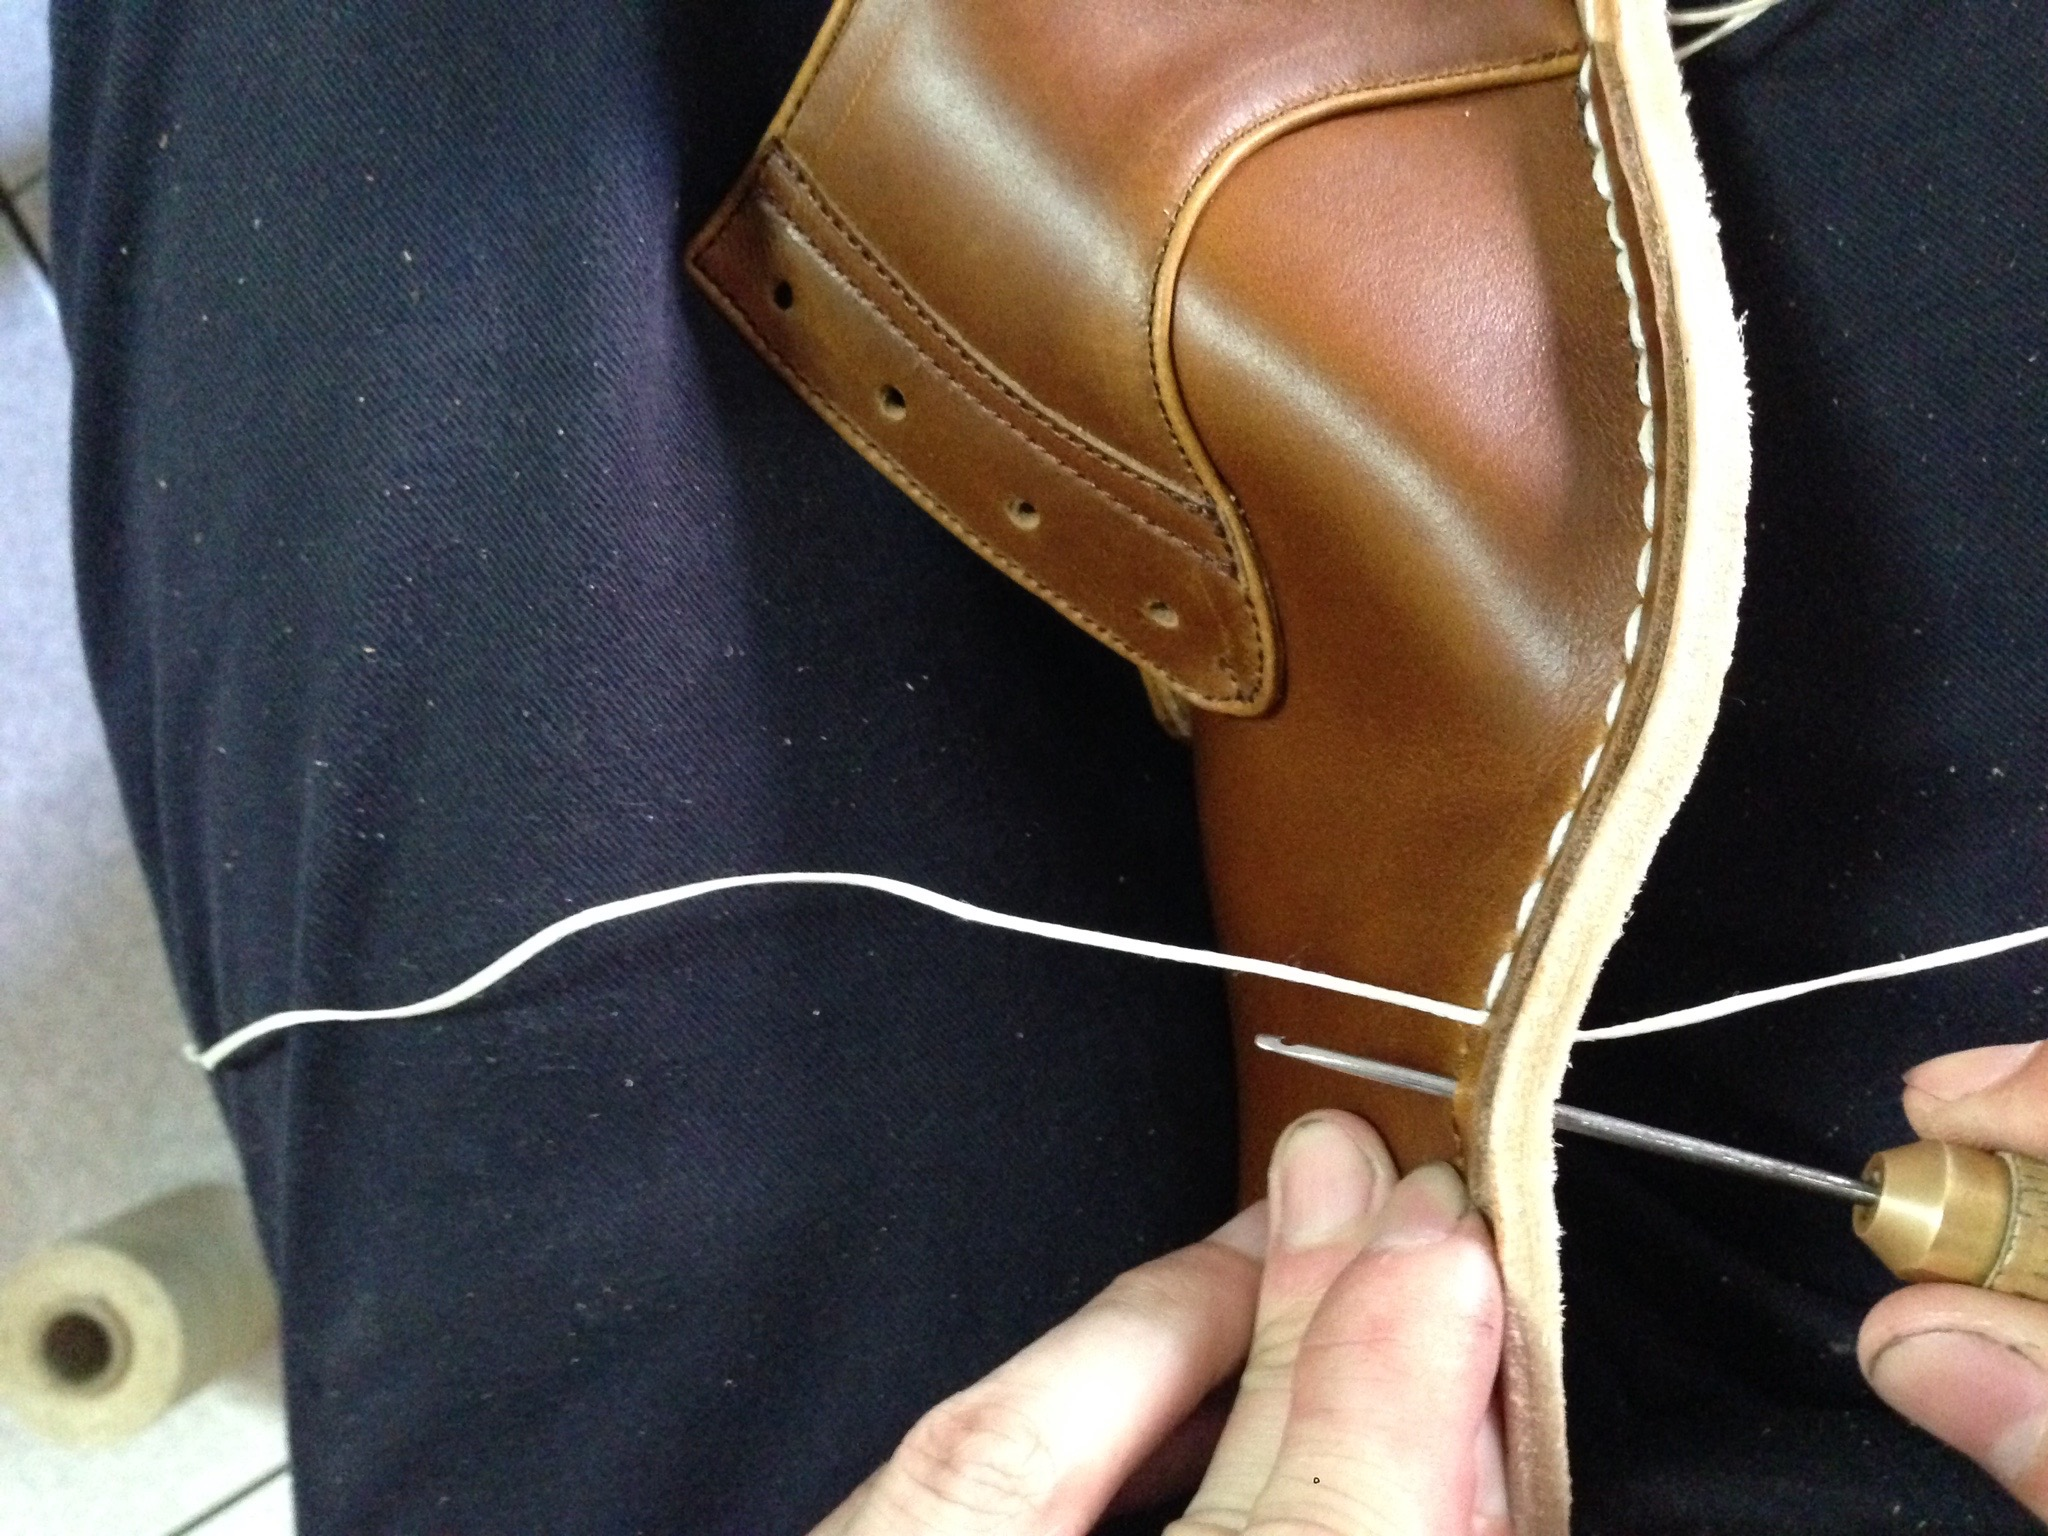 This process takes a lot of time to finish the upper and to show real craftmanships